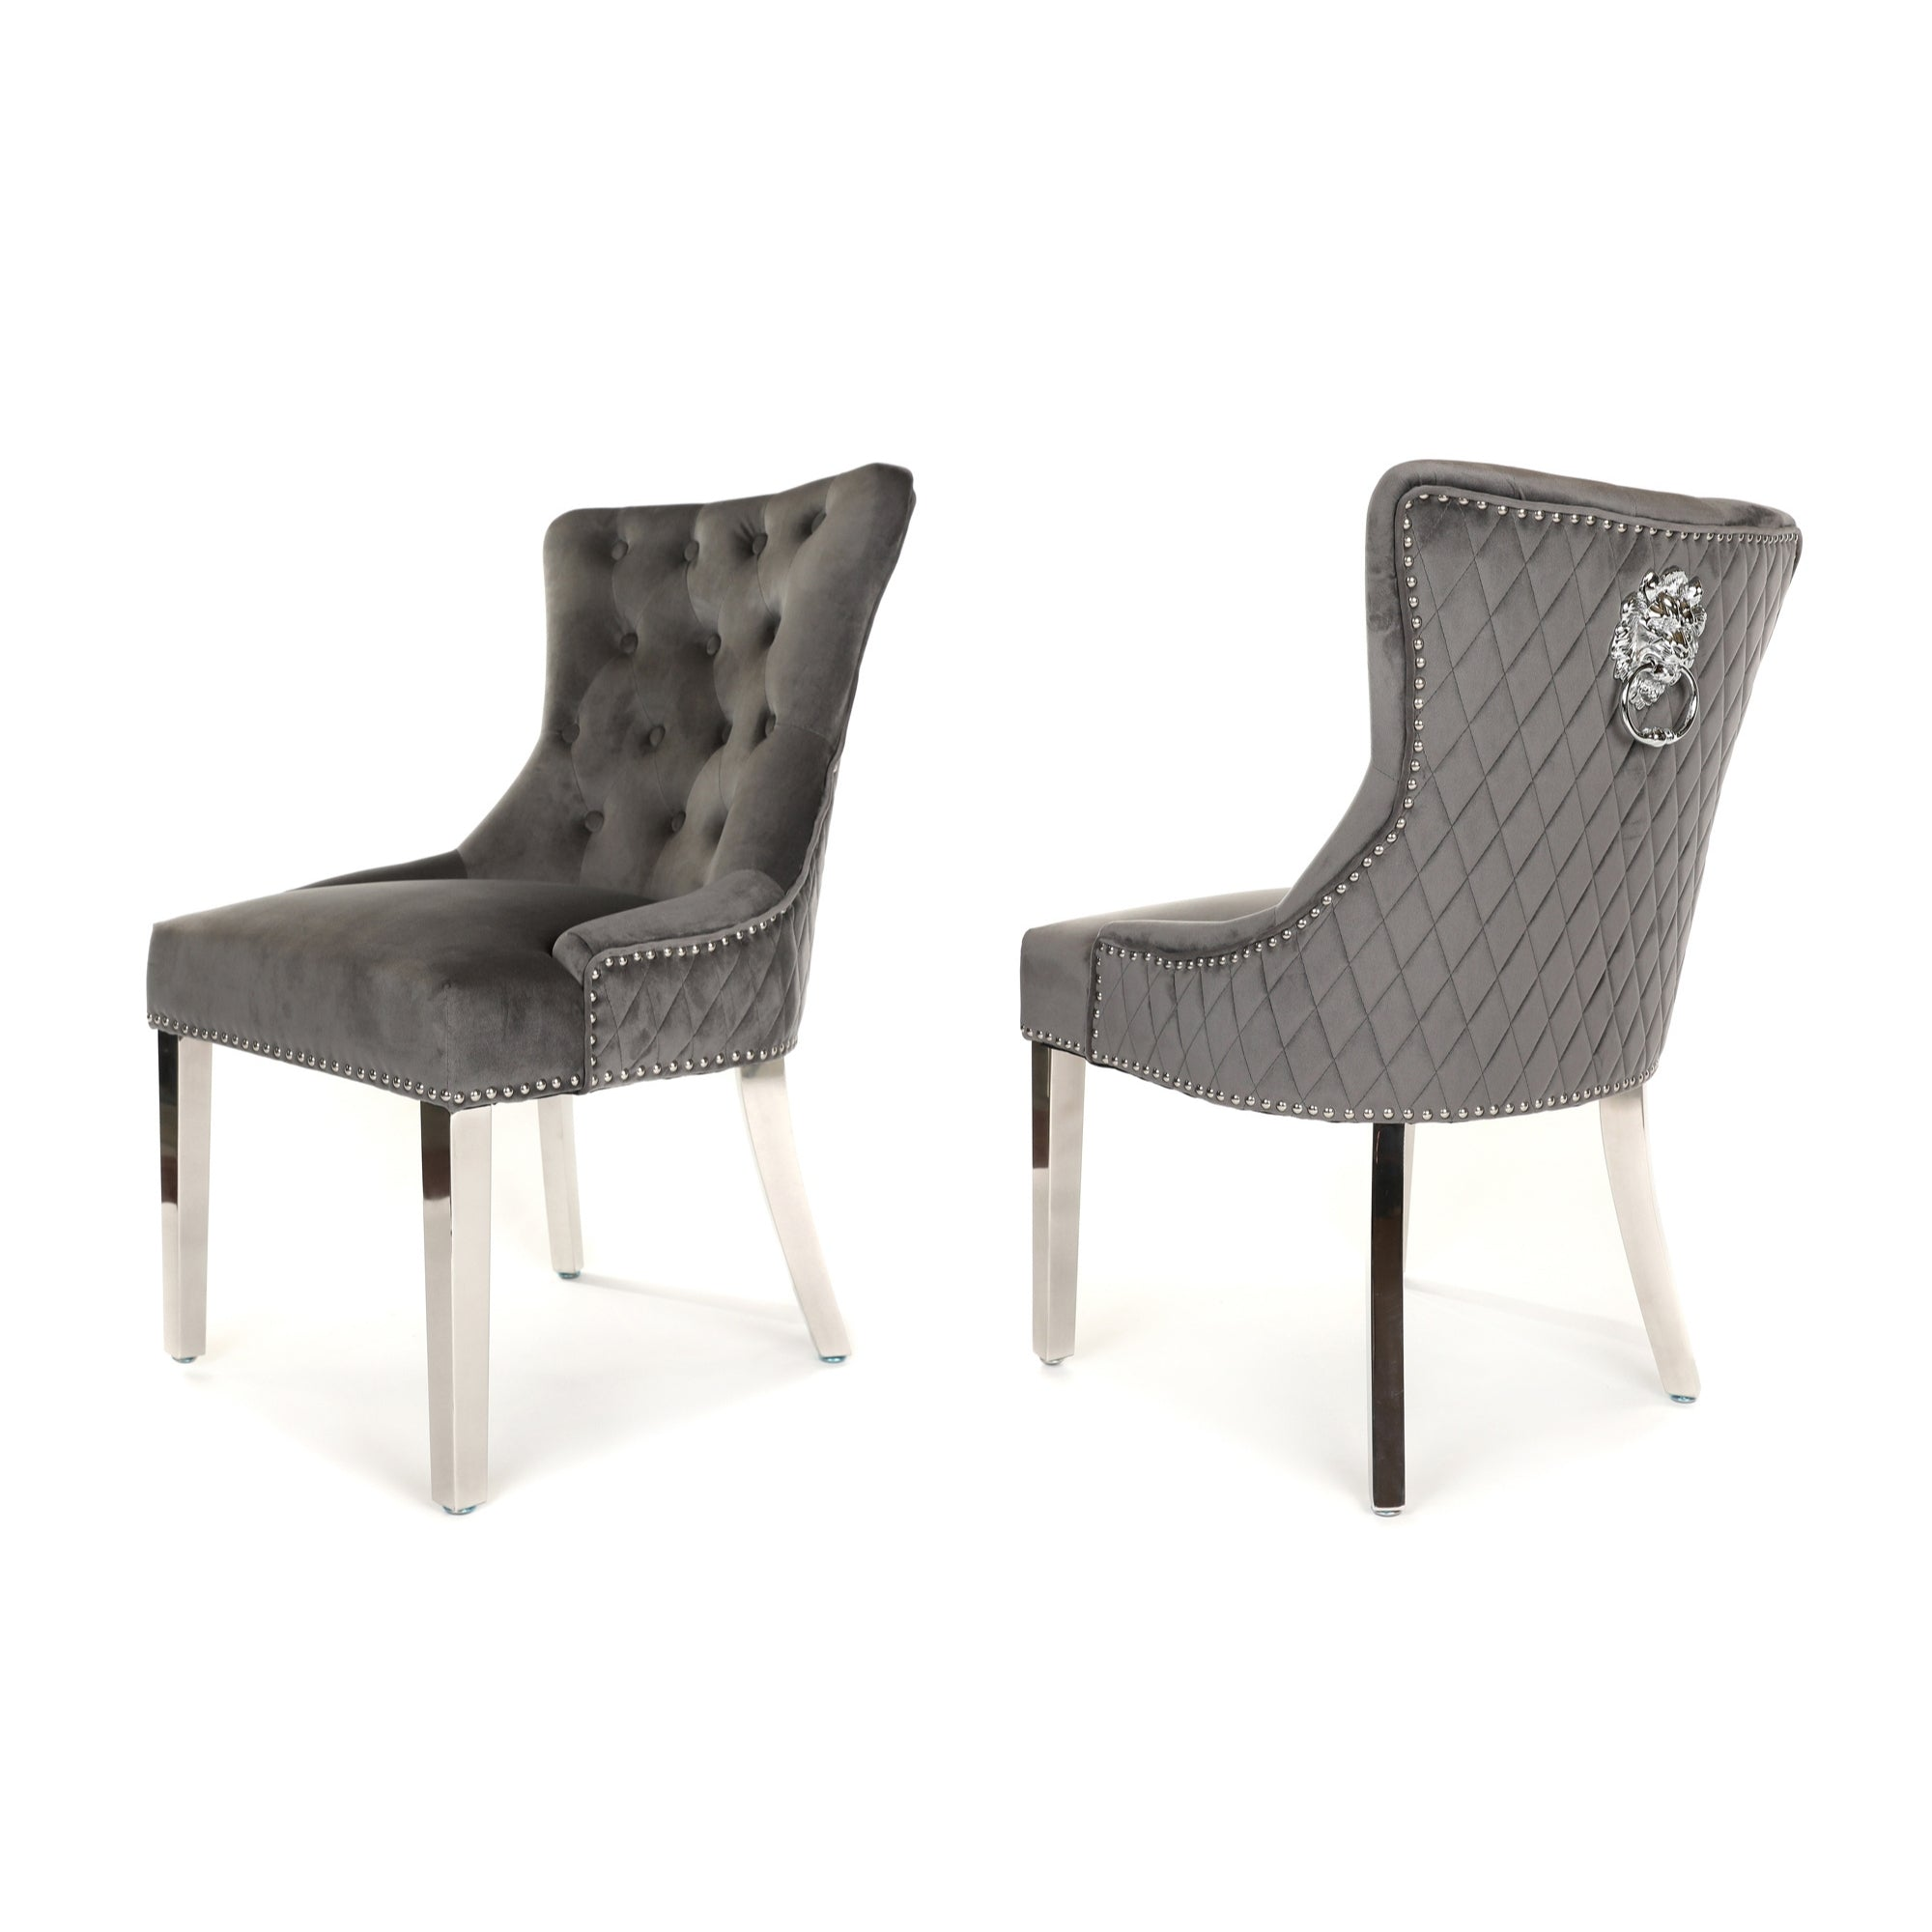 Simone Dining Chair upholstered in dark grey velvet with stud detail, lion knocker and metal legs